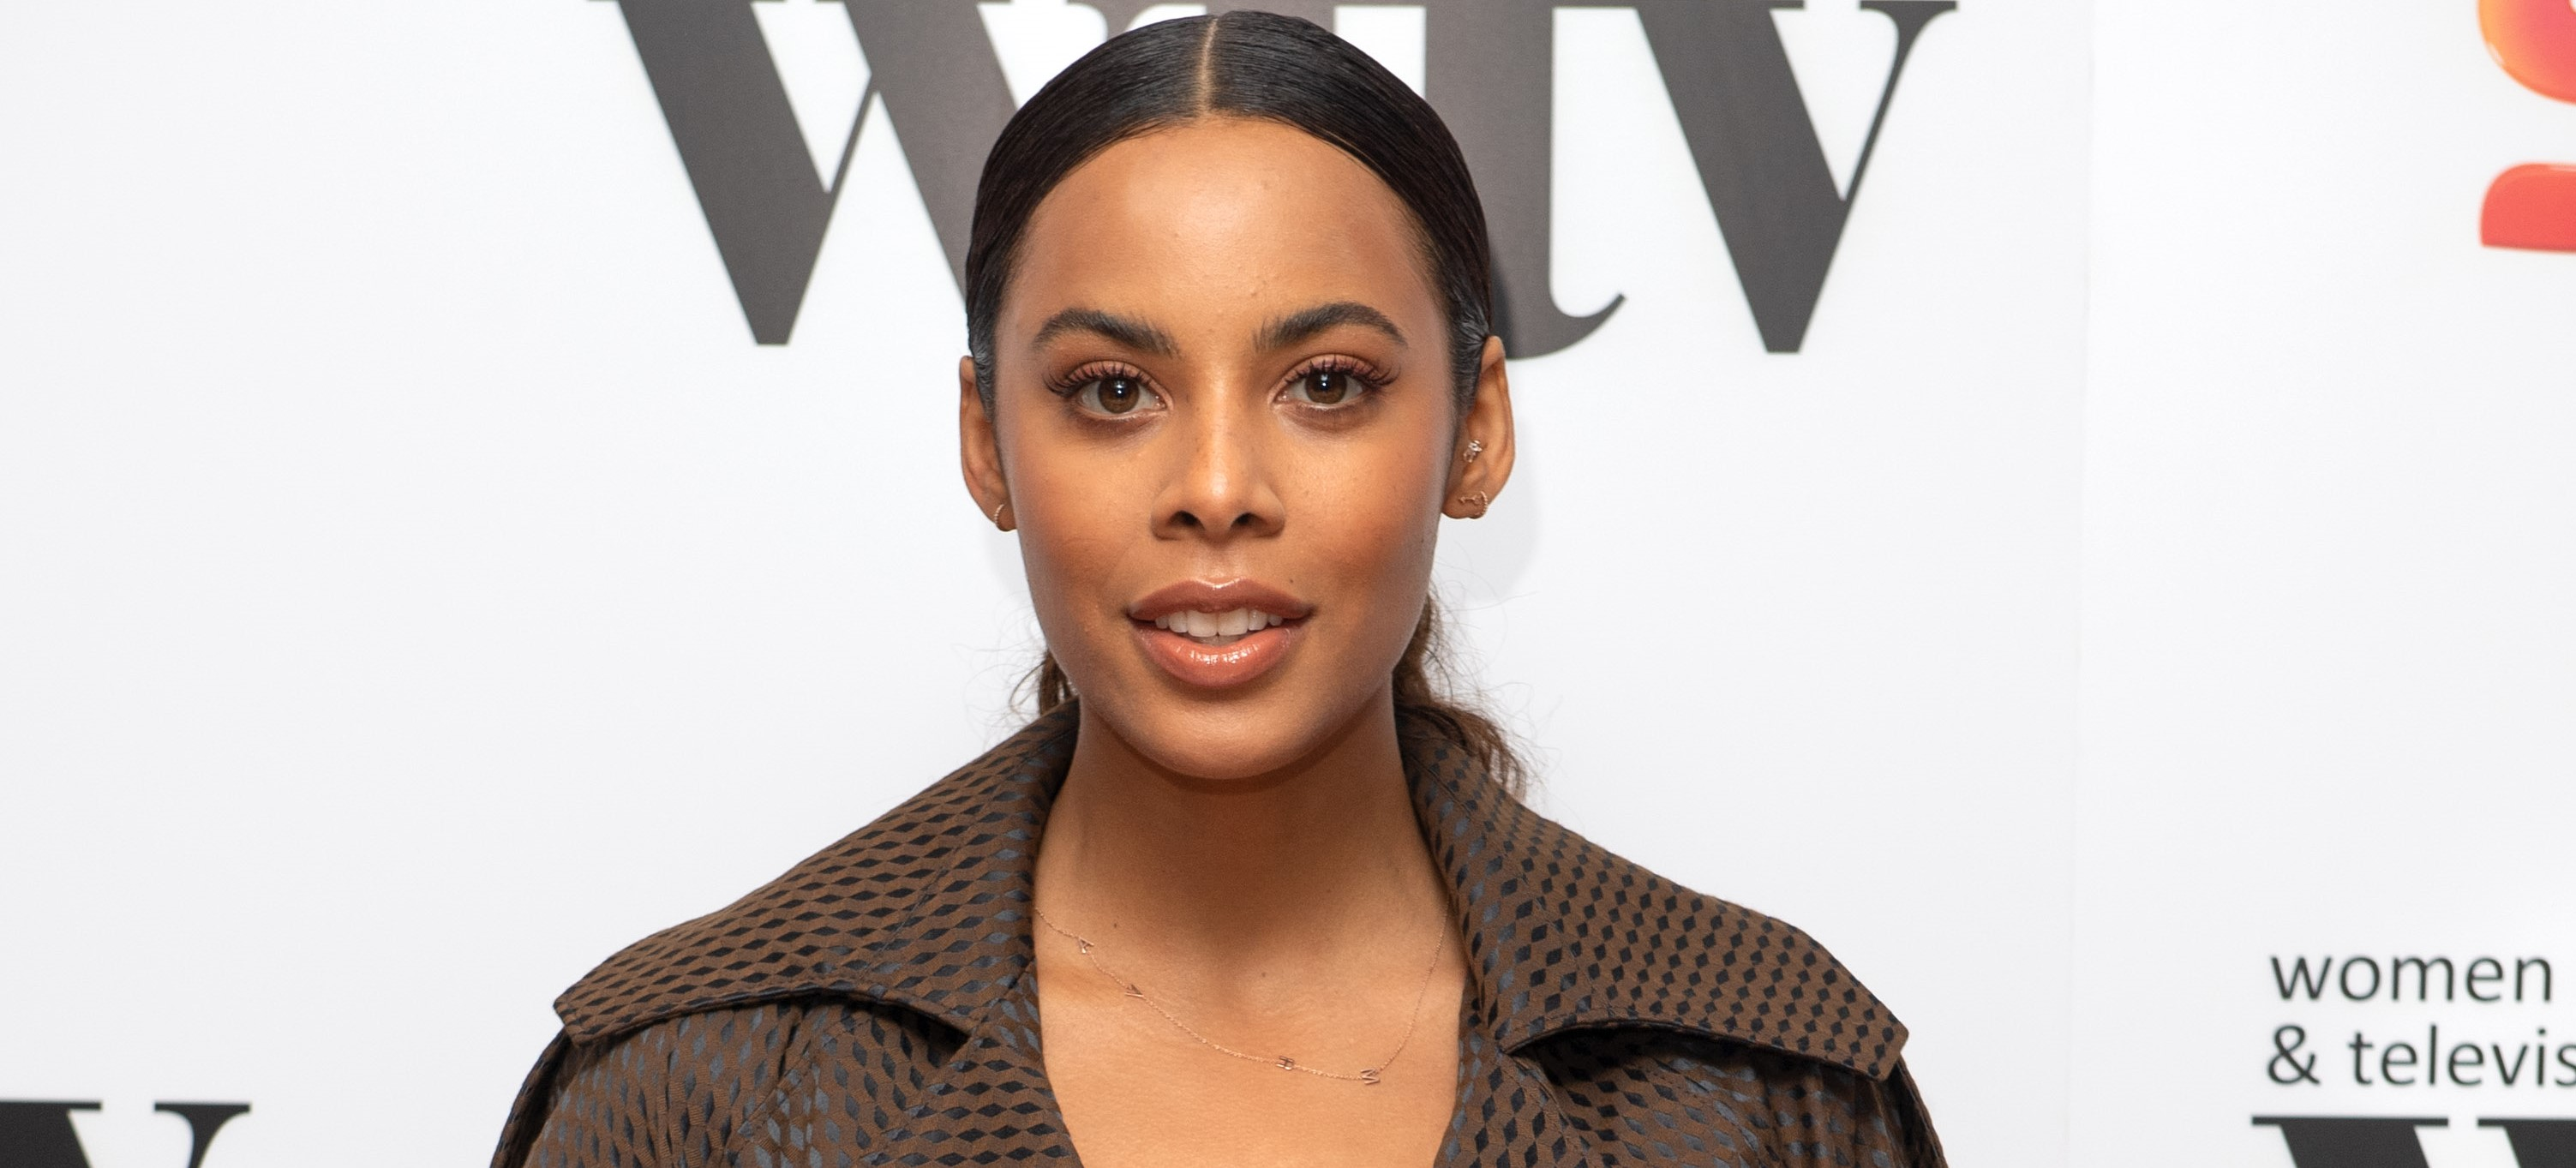 Rochelle Humes breaks silence on sister joining winter Love Island